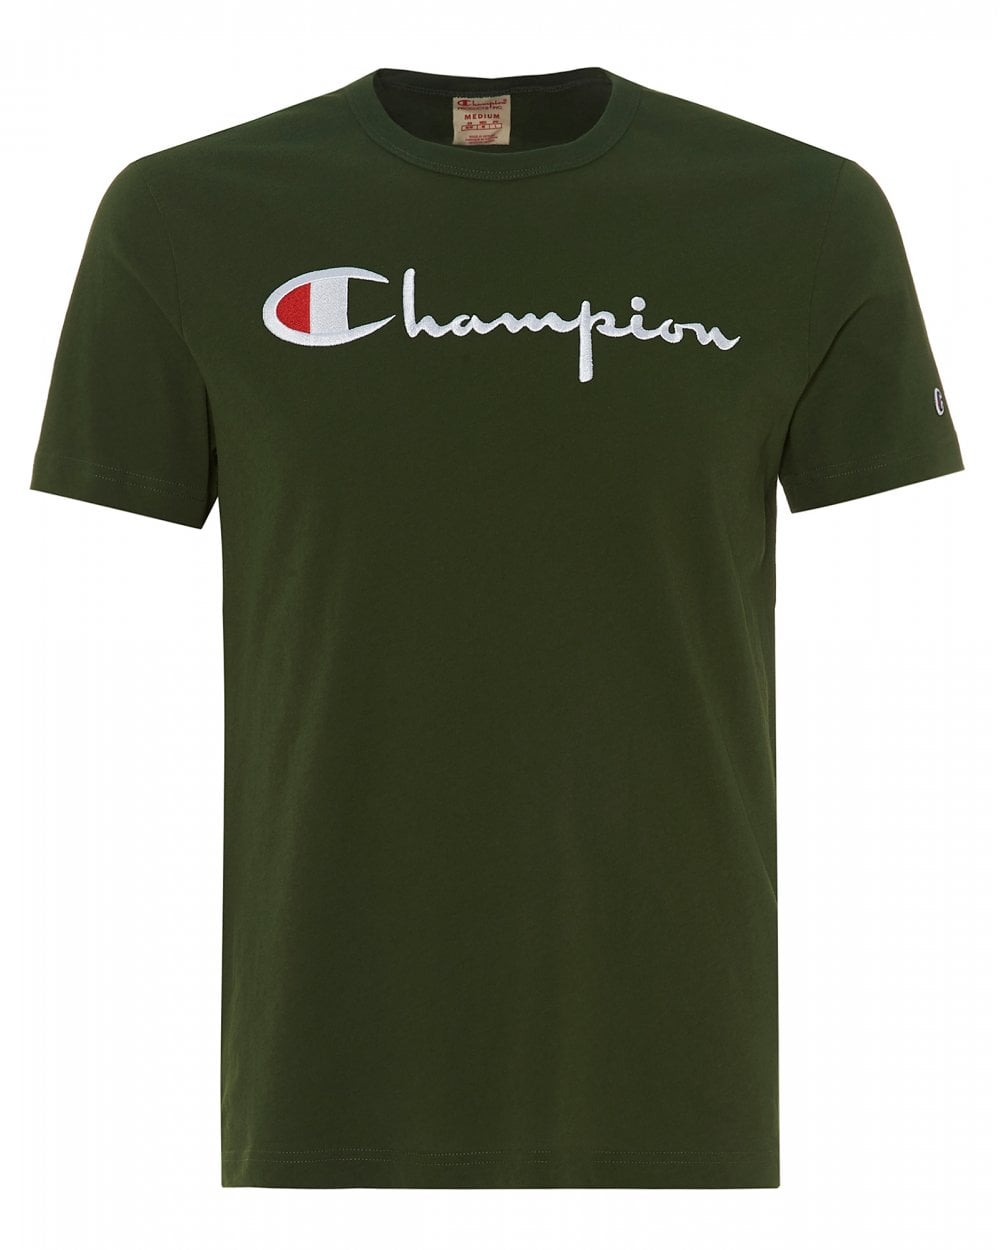 6779a105 Champion Mens Large Script T-Shirt, Bottle Green Crew Neck Tee